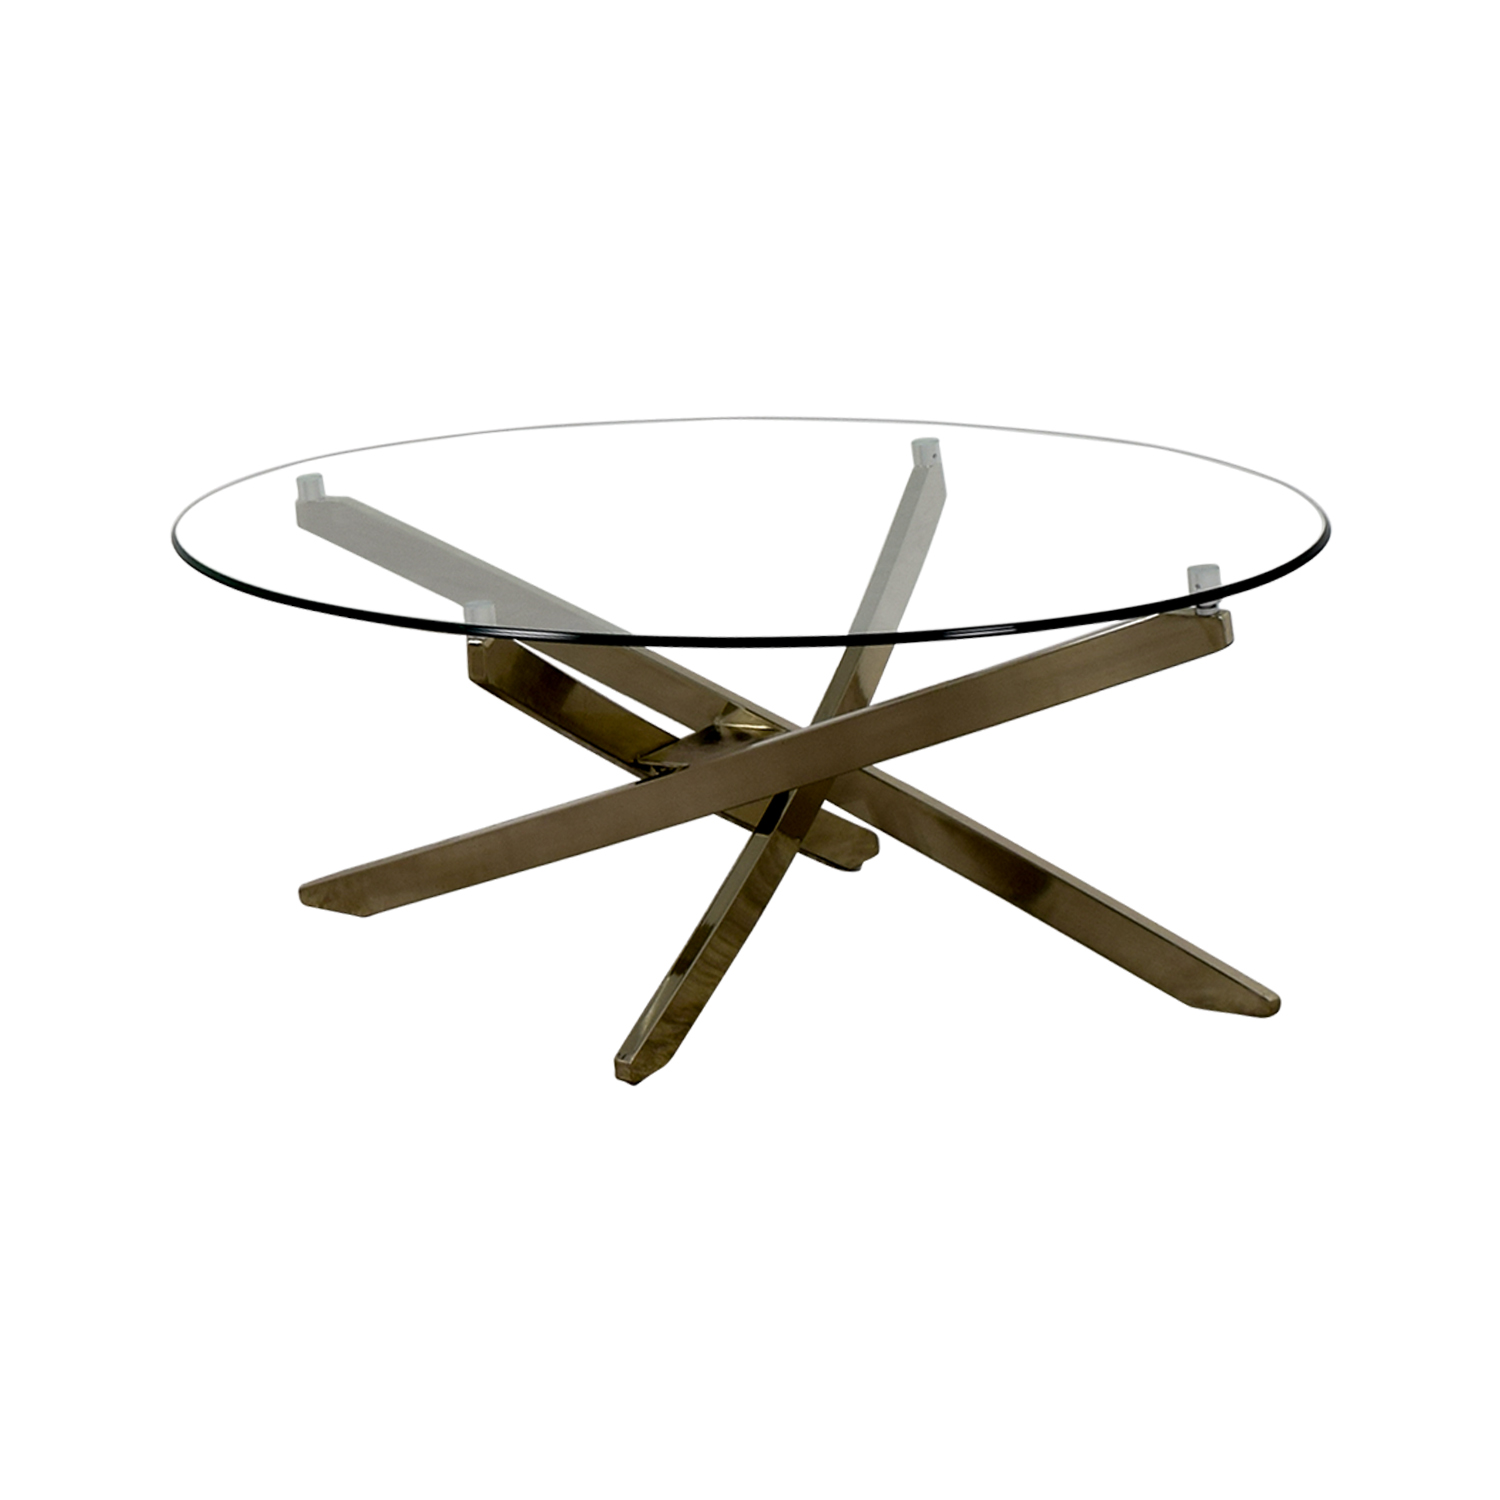 shop Raymour & Flanigan Raymour & Flanigan Zila Glass and Chrome Coffee Table online